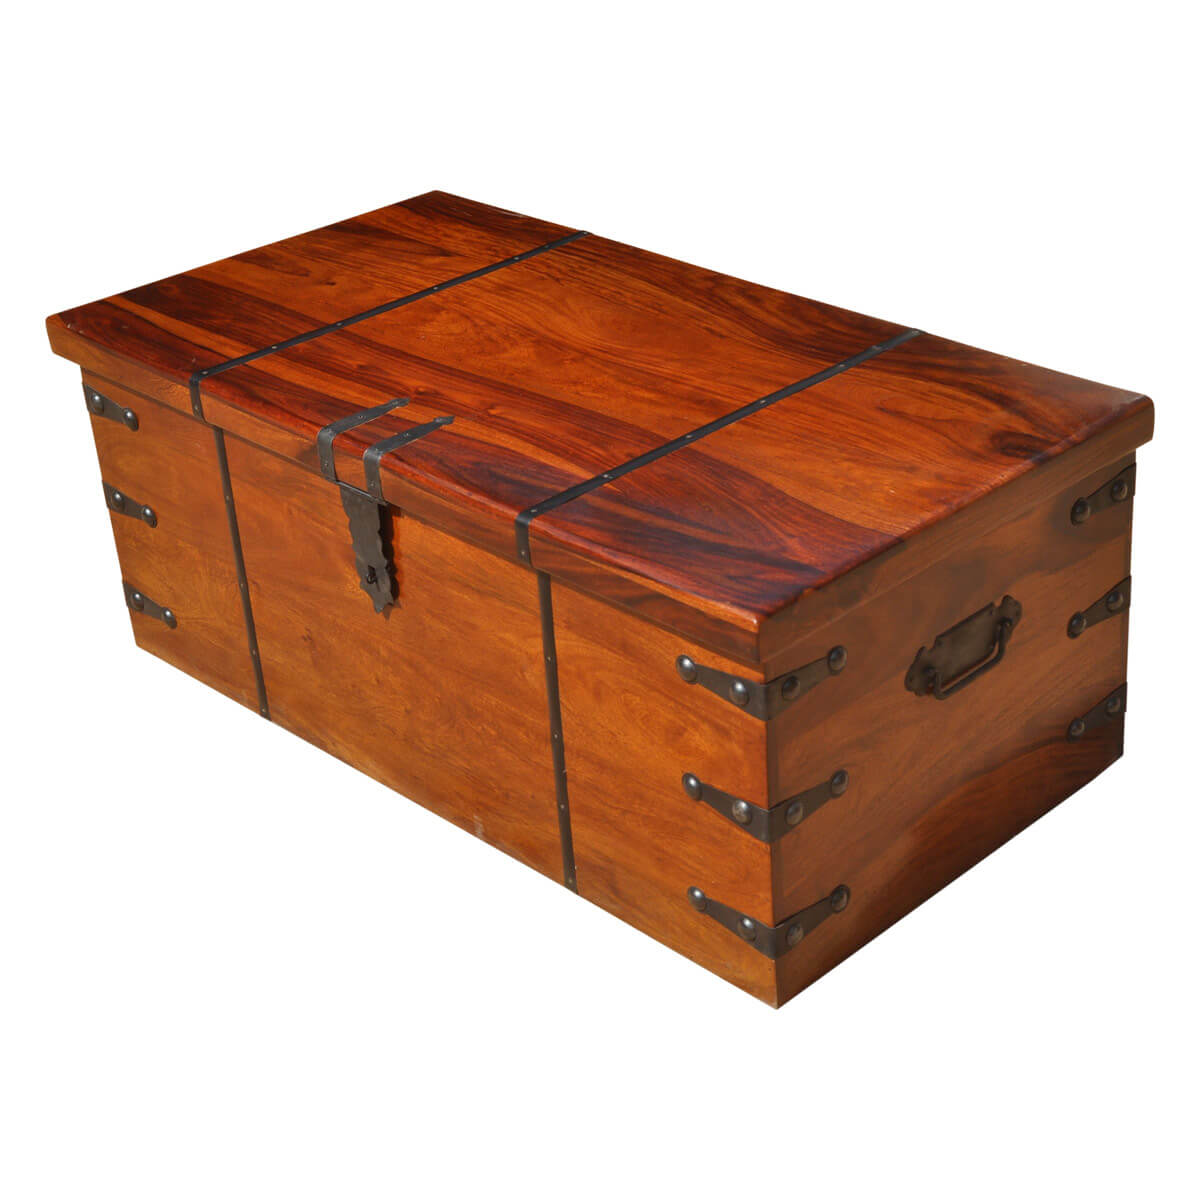 Amazing Large Solid Wood With Metal Accents Storage Trunk Coffee Table Chest